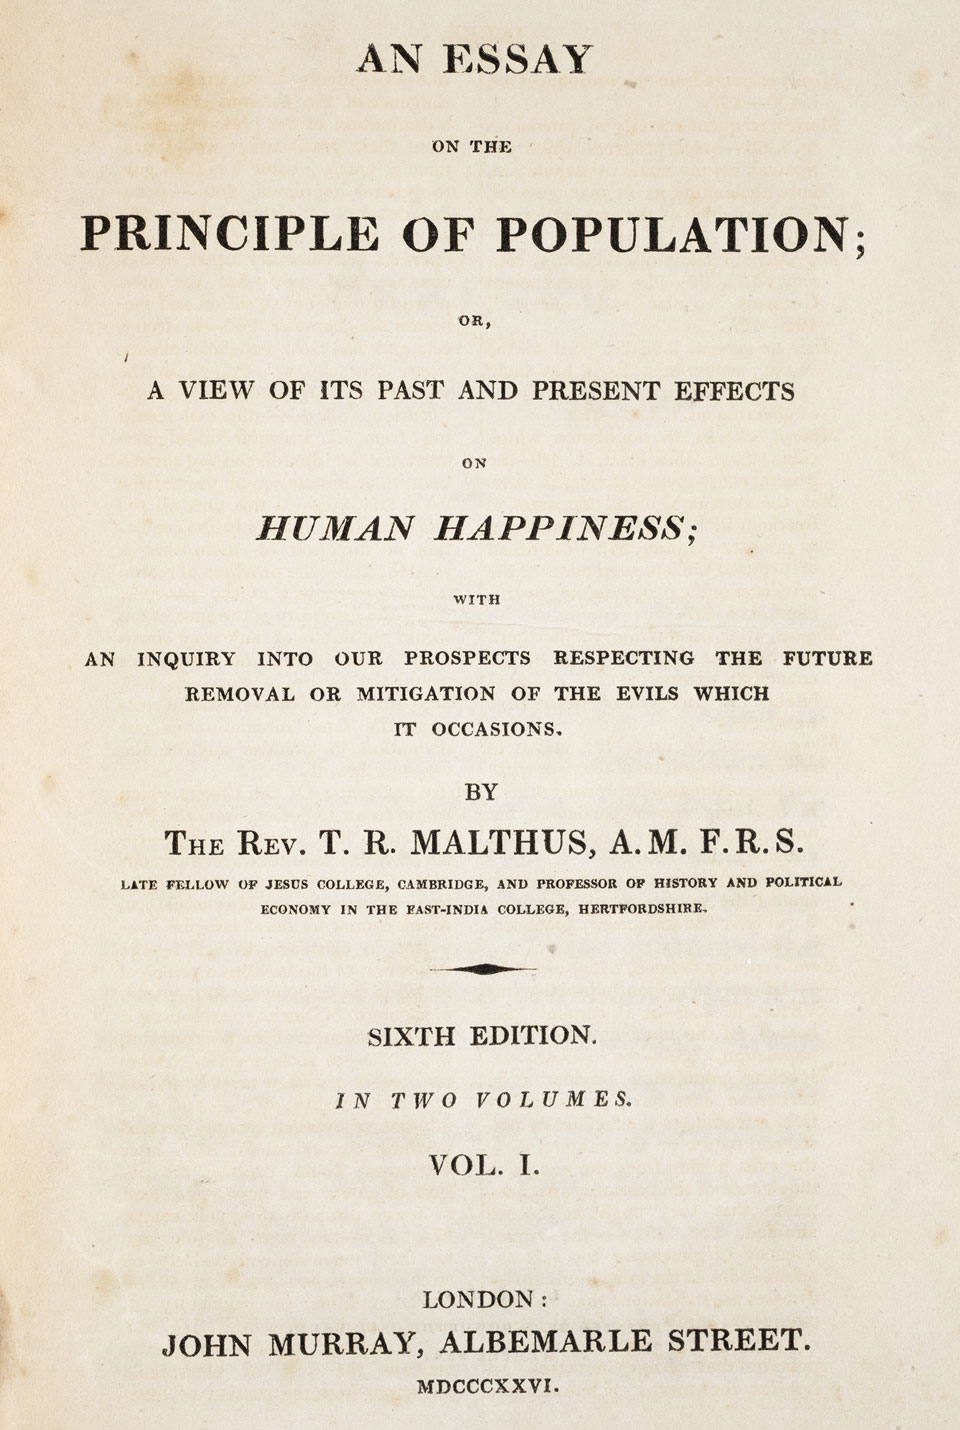 the grandeur of life a celebration of charles darwin and the titlepage to thomas malthus an essay on the principle of population 1826